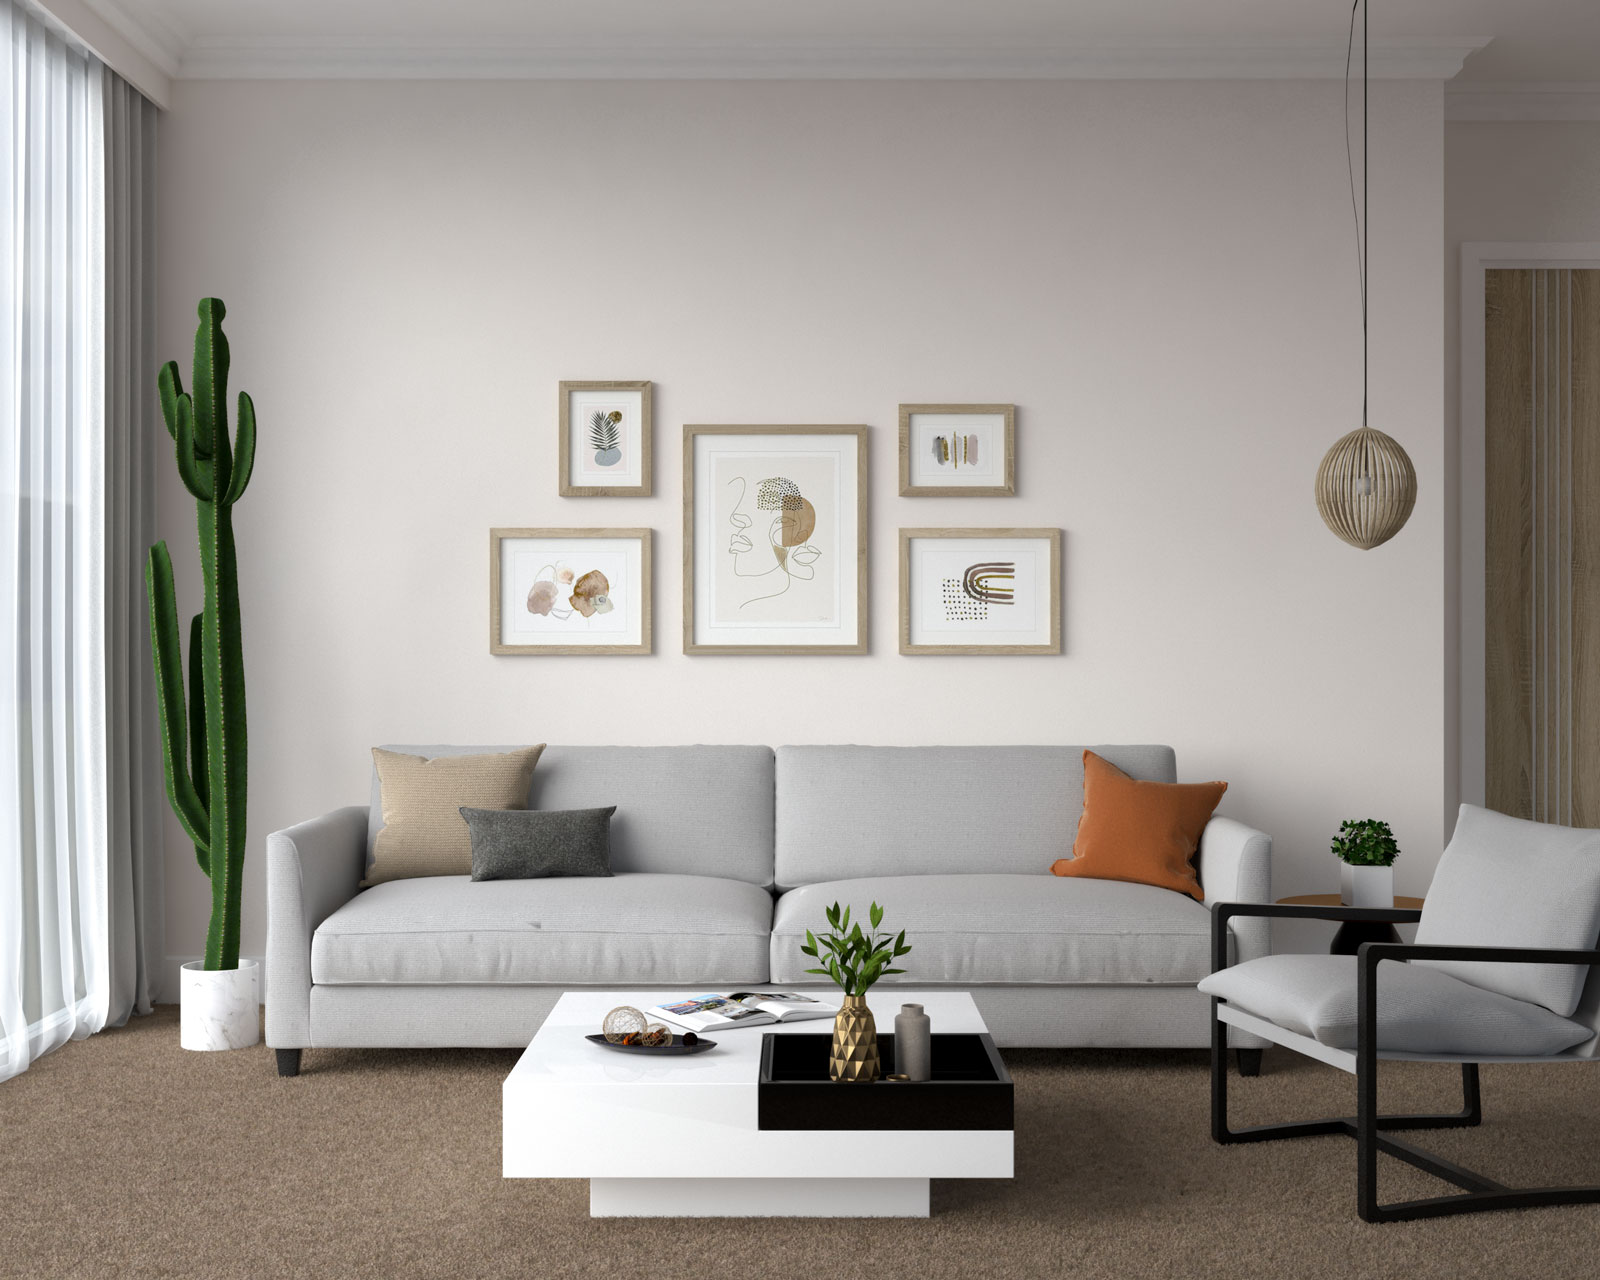 Gray couch and brown carpet flooring